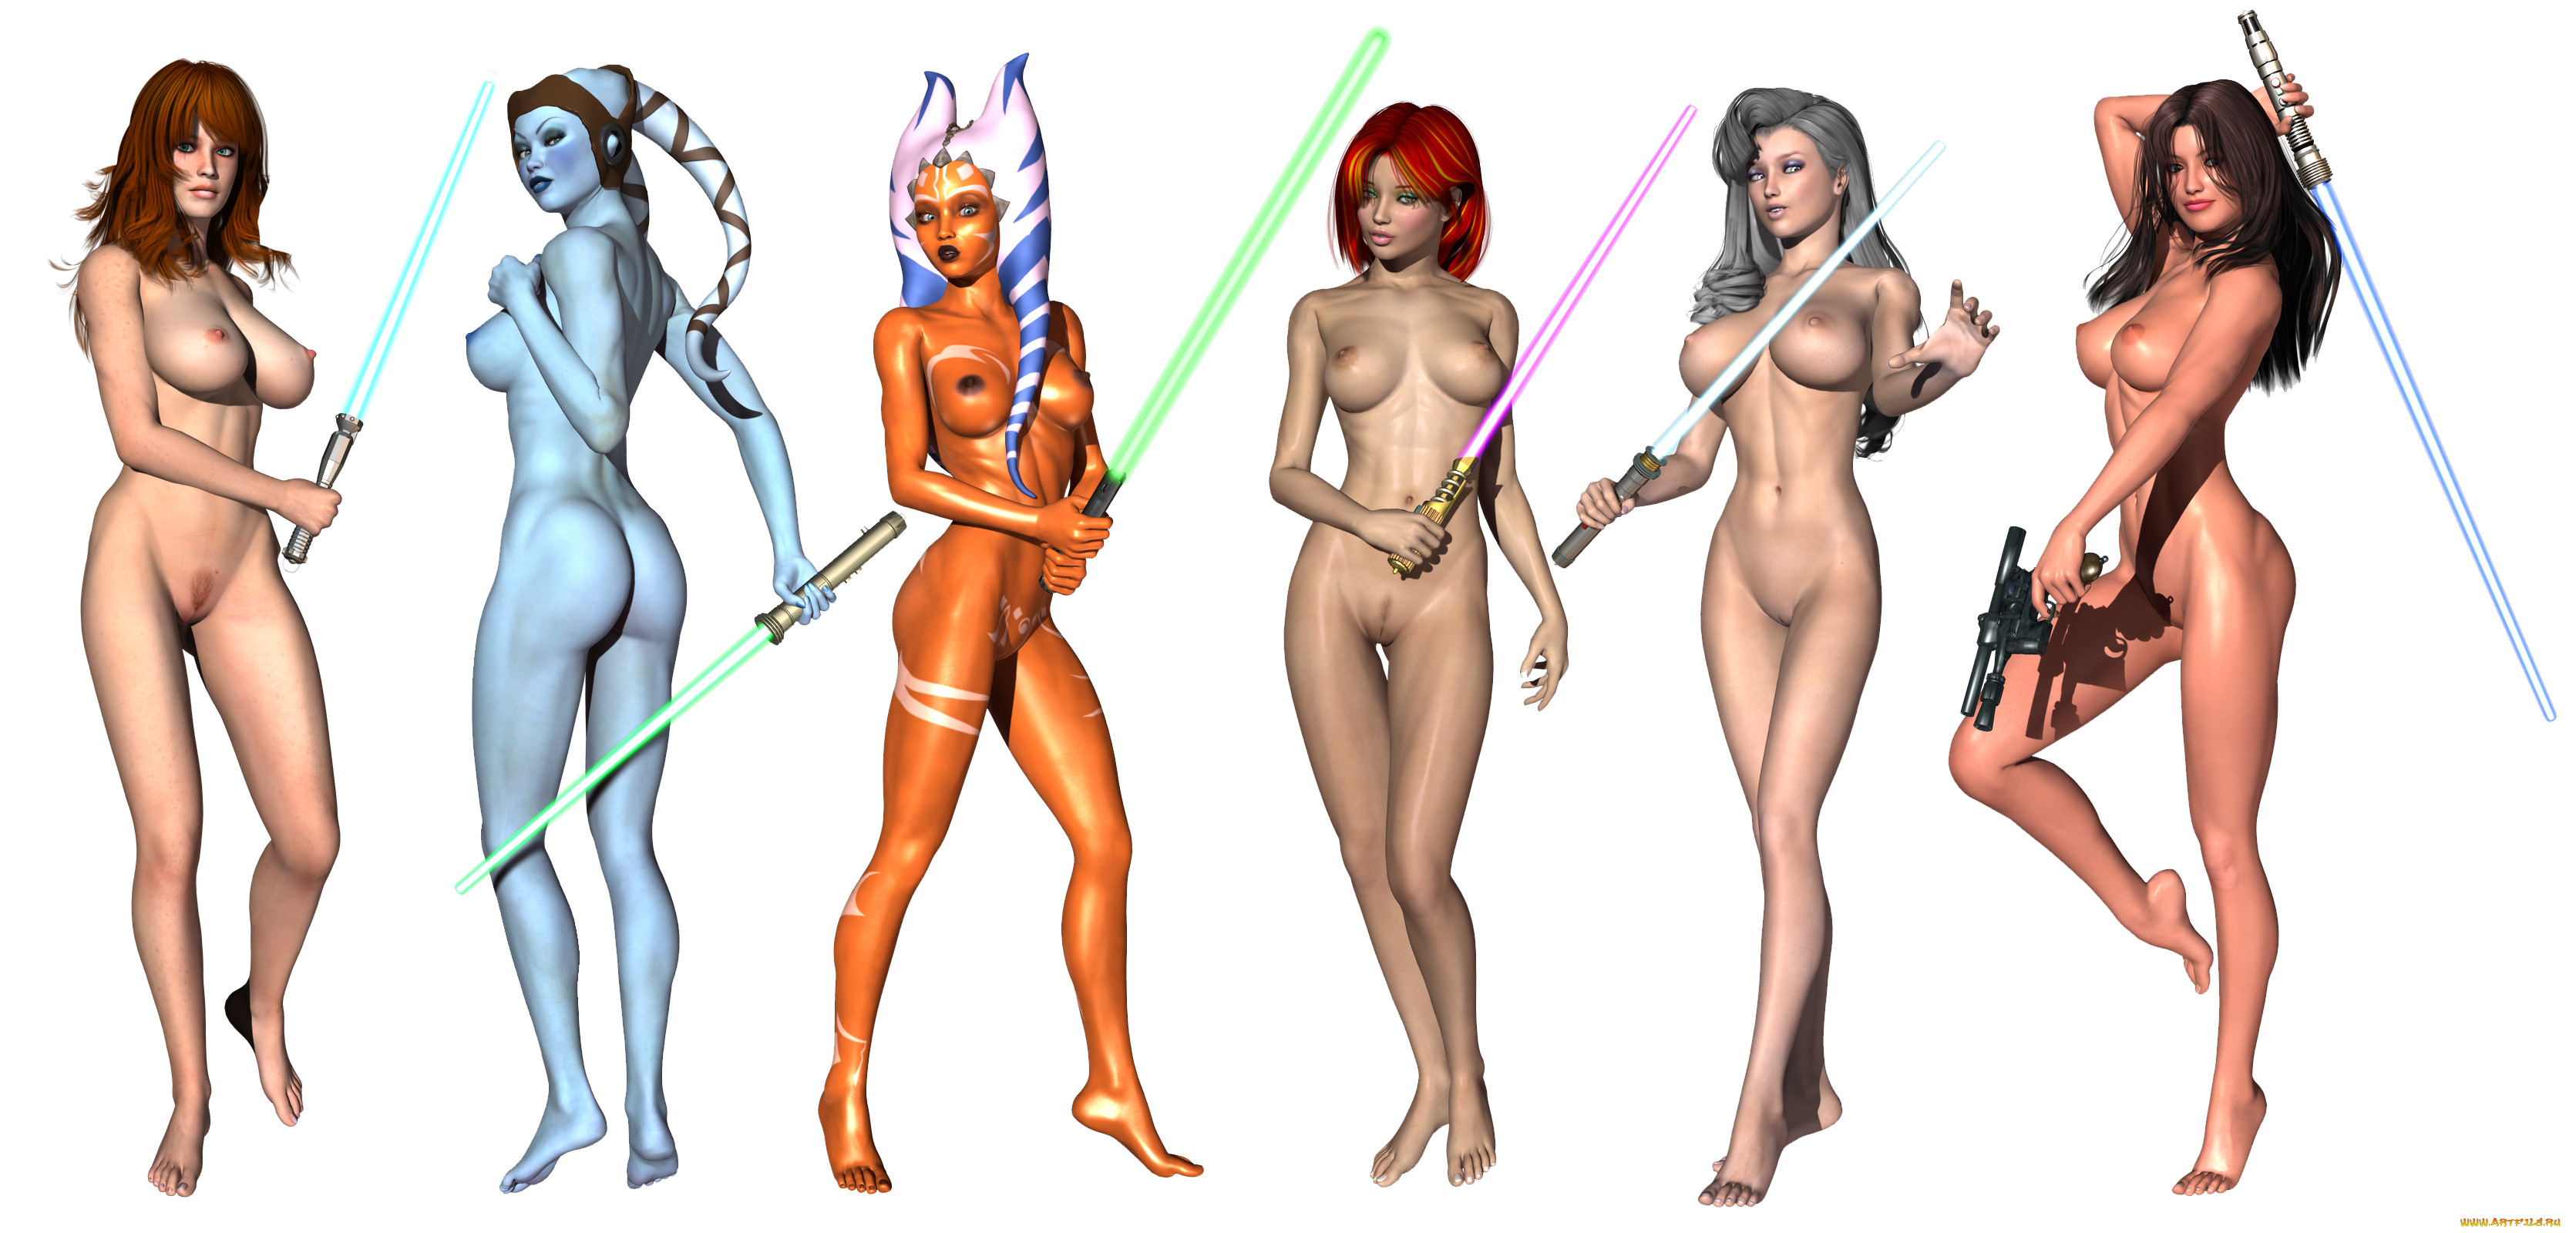 Female jedi nude naked movie